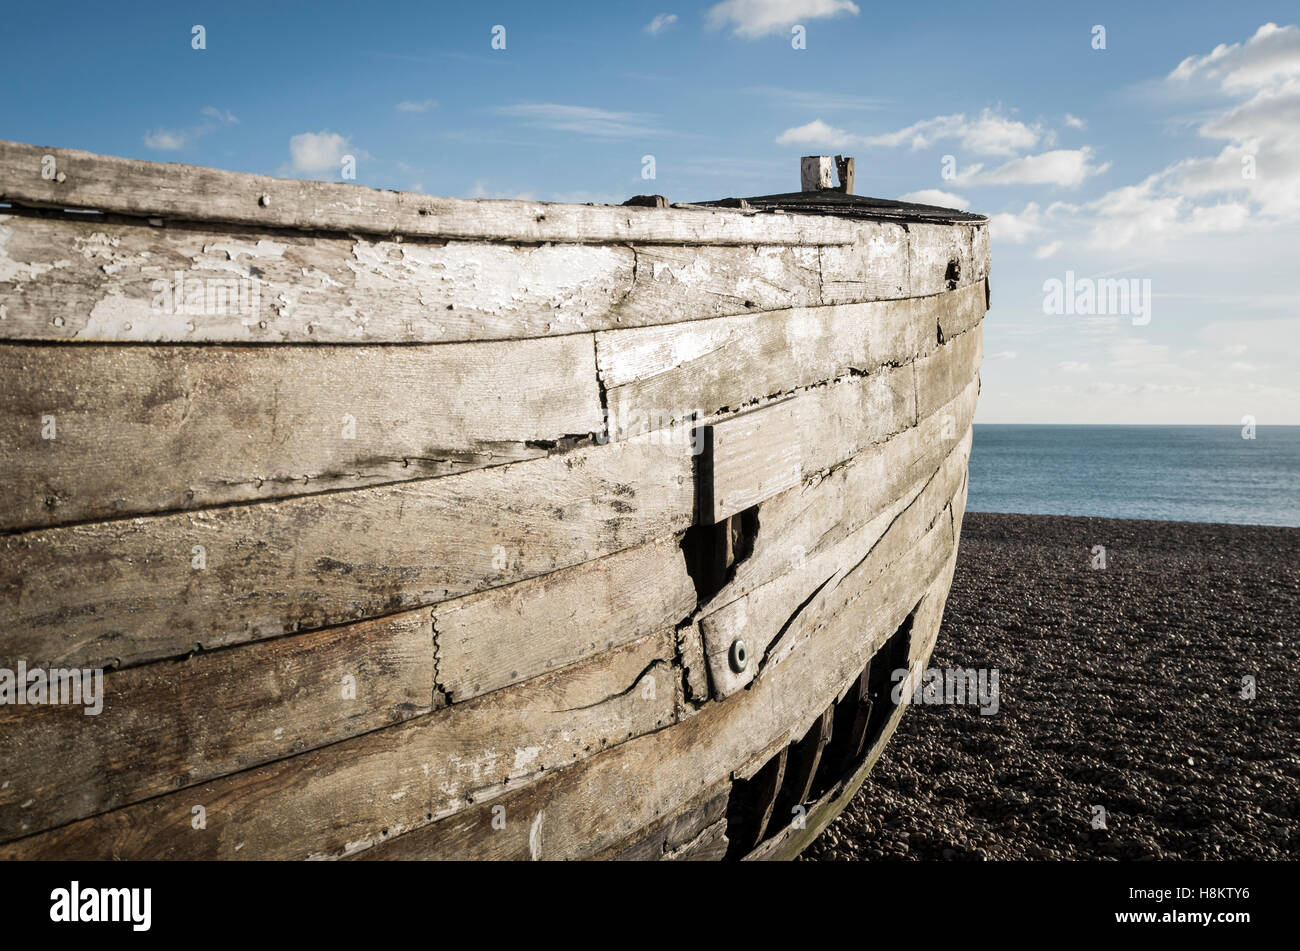 Hull of an old decaying wooden rowing fishing boat with holes in on a pebble beach at the seaside - Stock Image